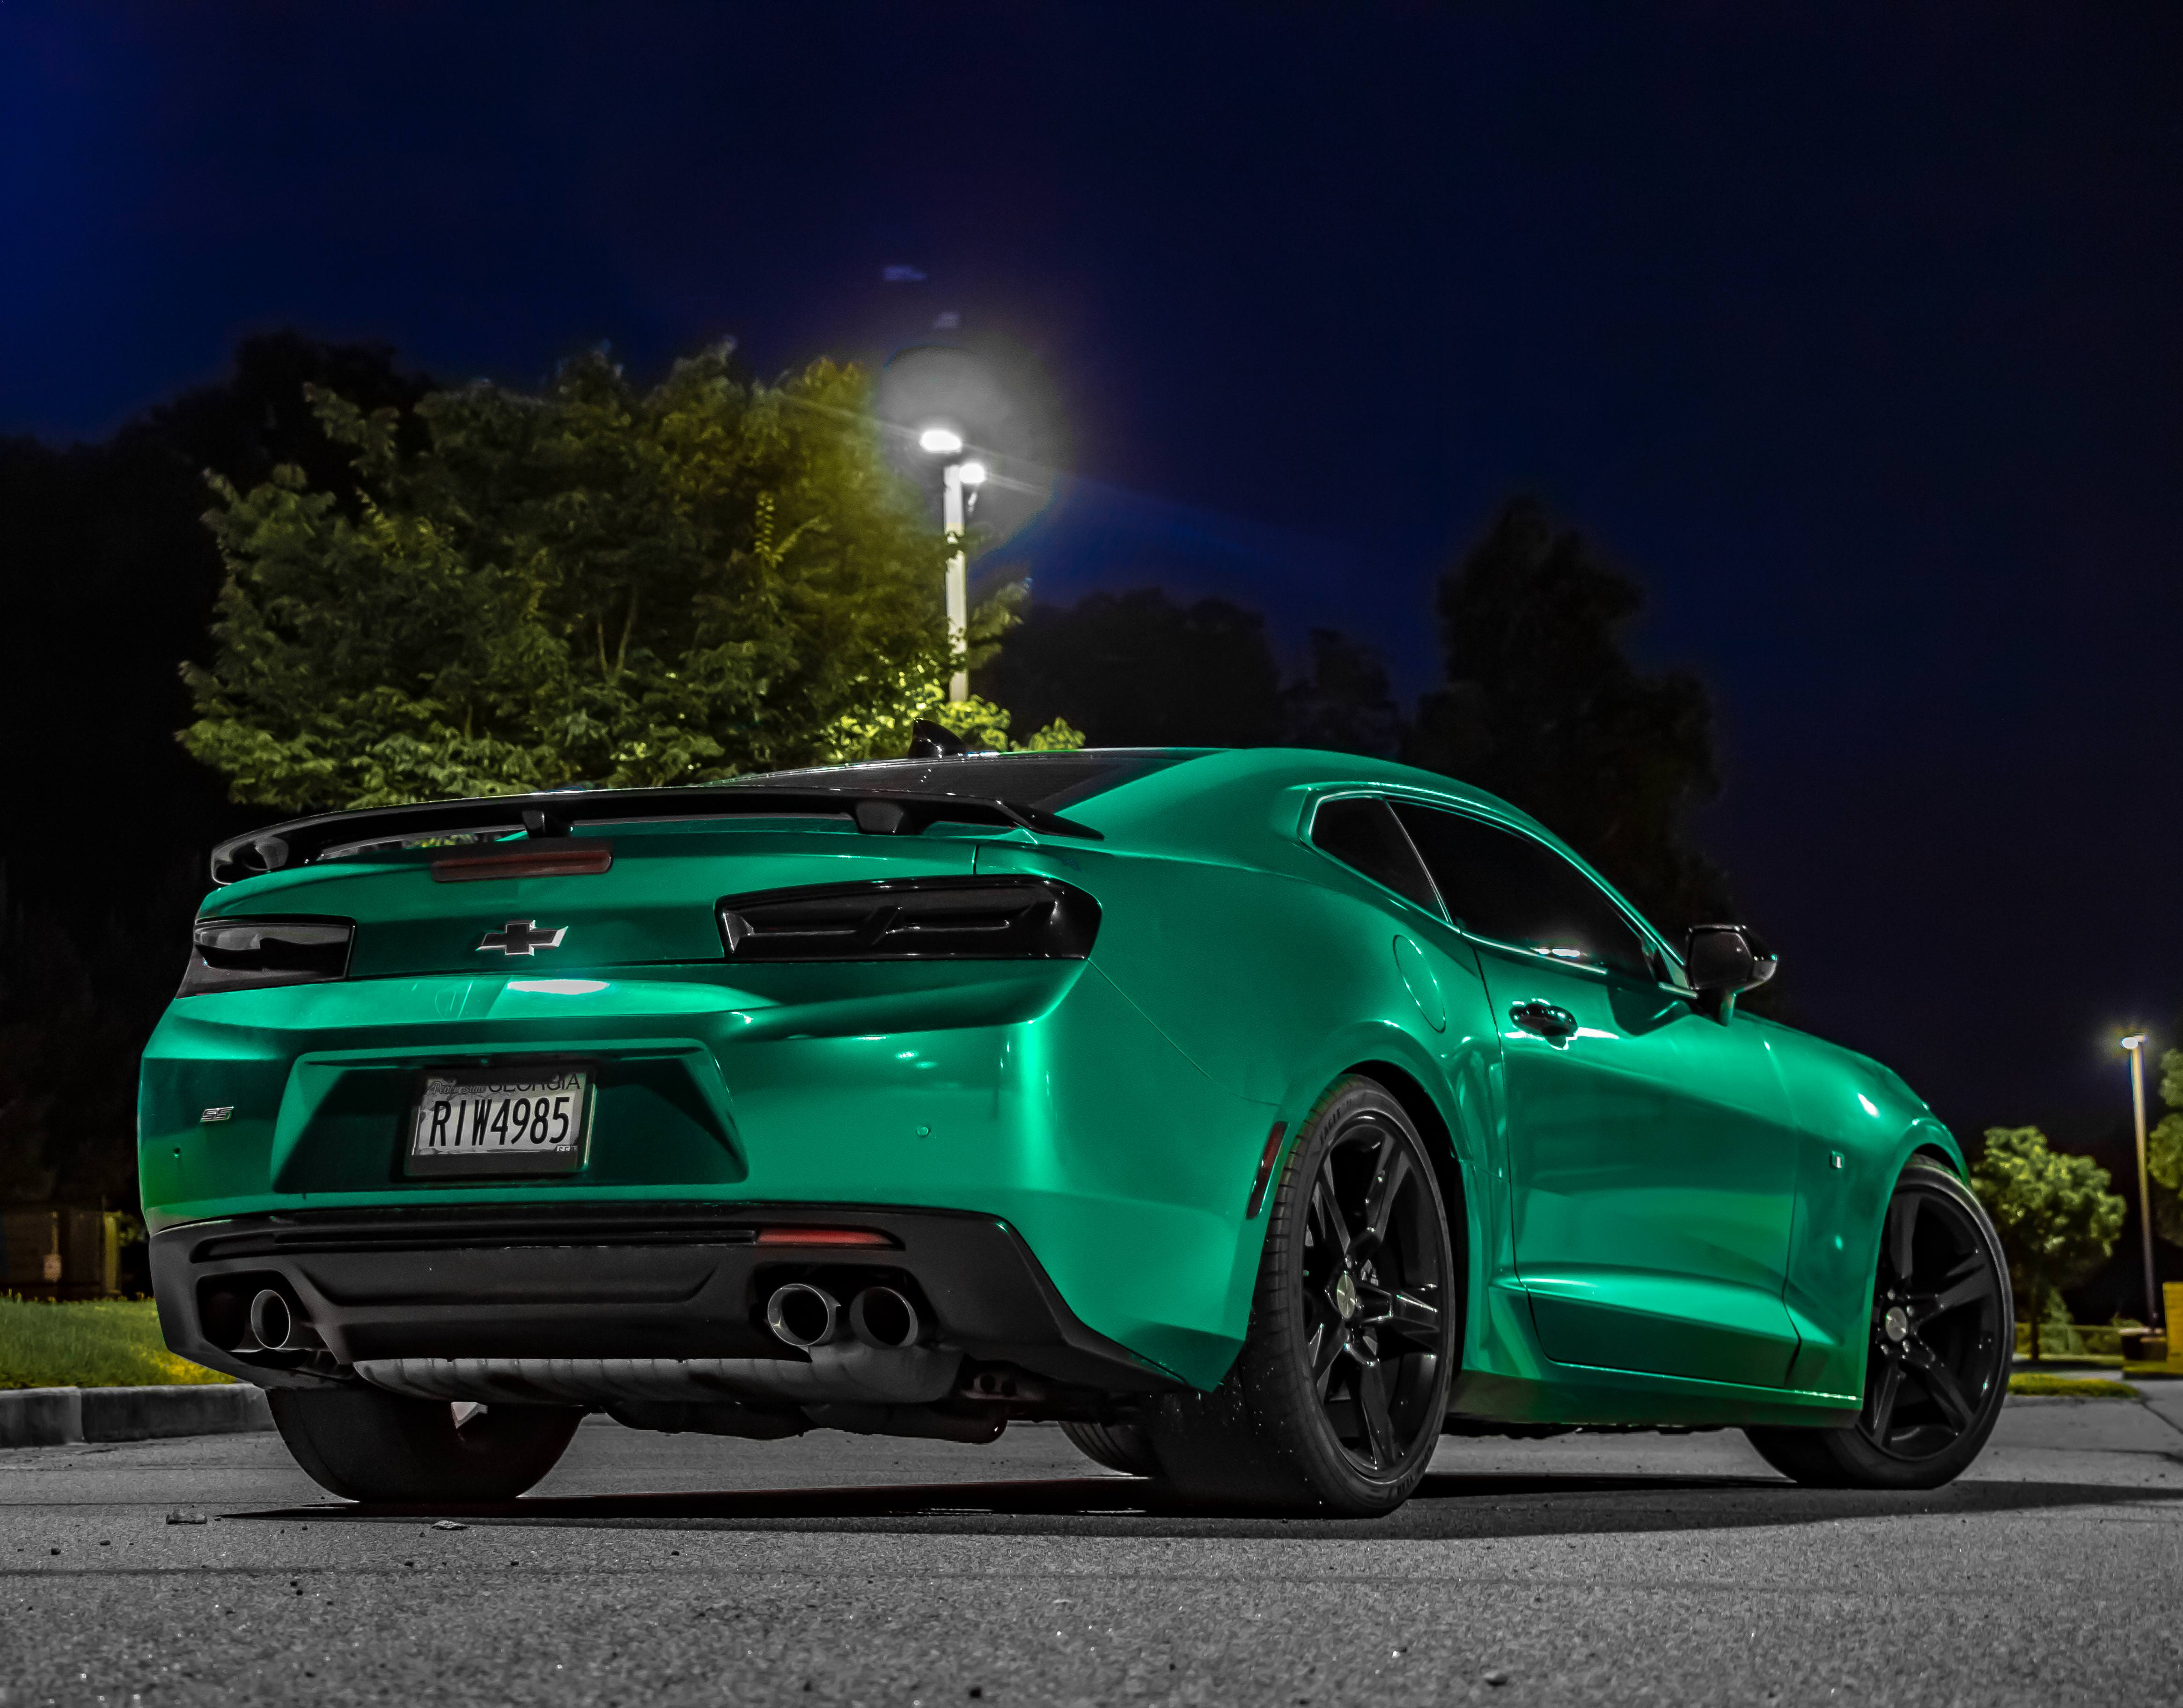 Camaro 4k Wallpapers For Your Desktop Or Mobile Screen Free And Easy To Download